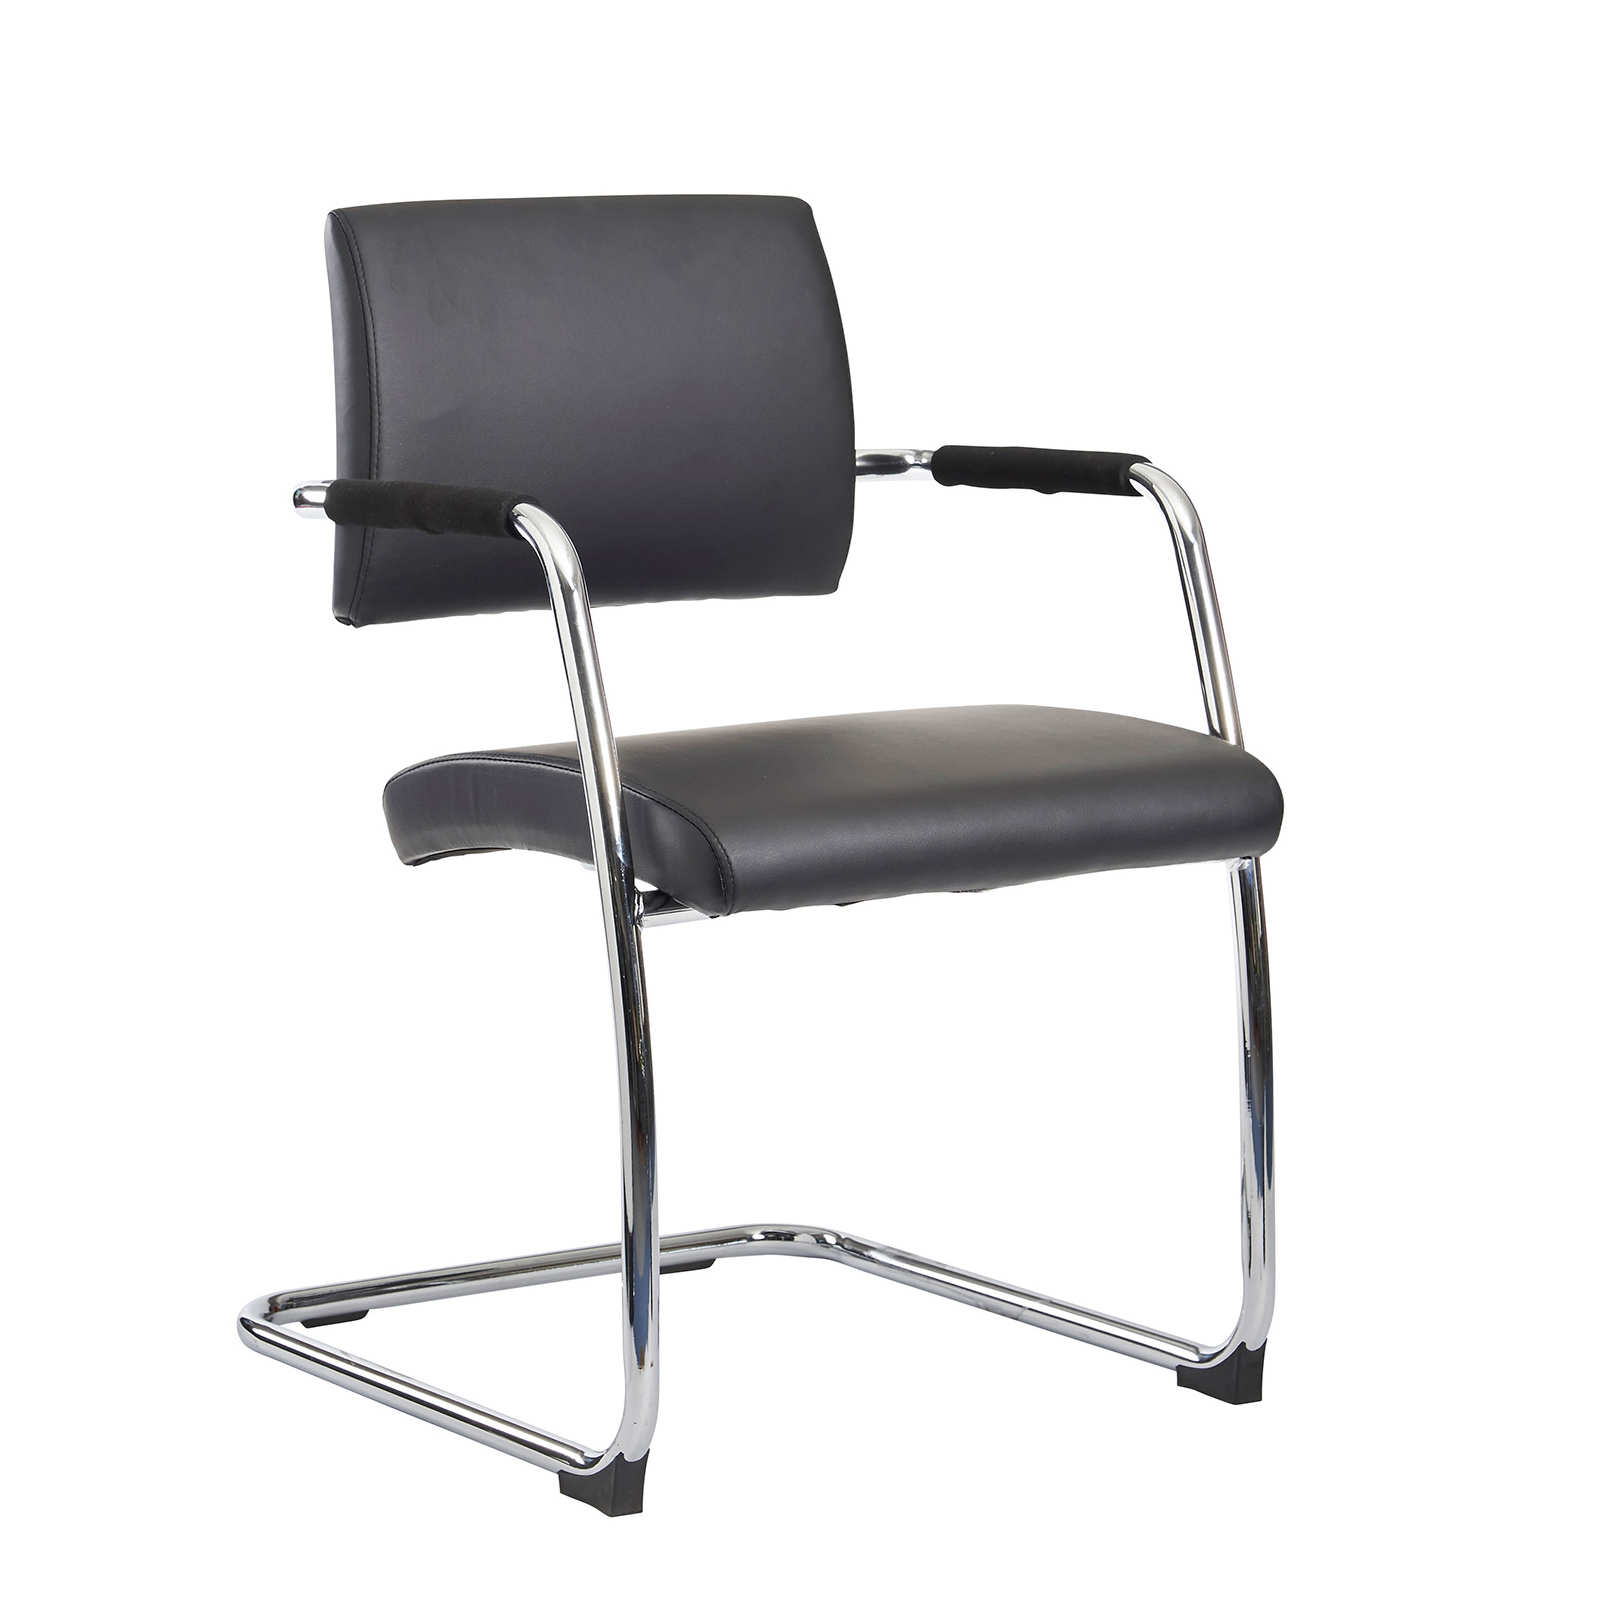 Boardroom / Meeting Bruges meeting room cantilever chair (pack of 2) - black faux leather